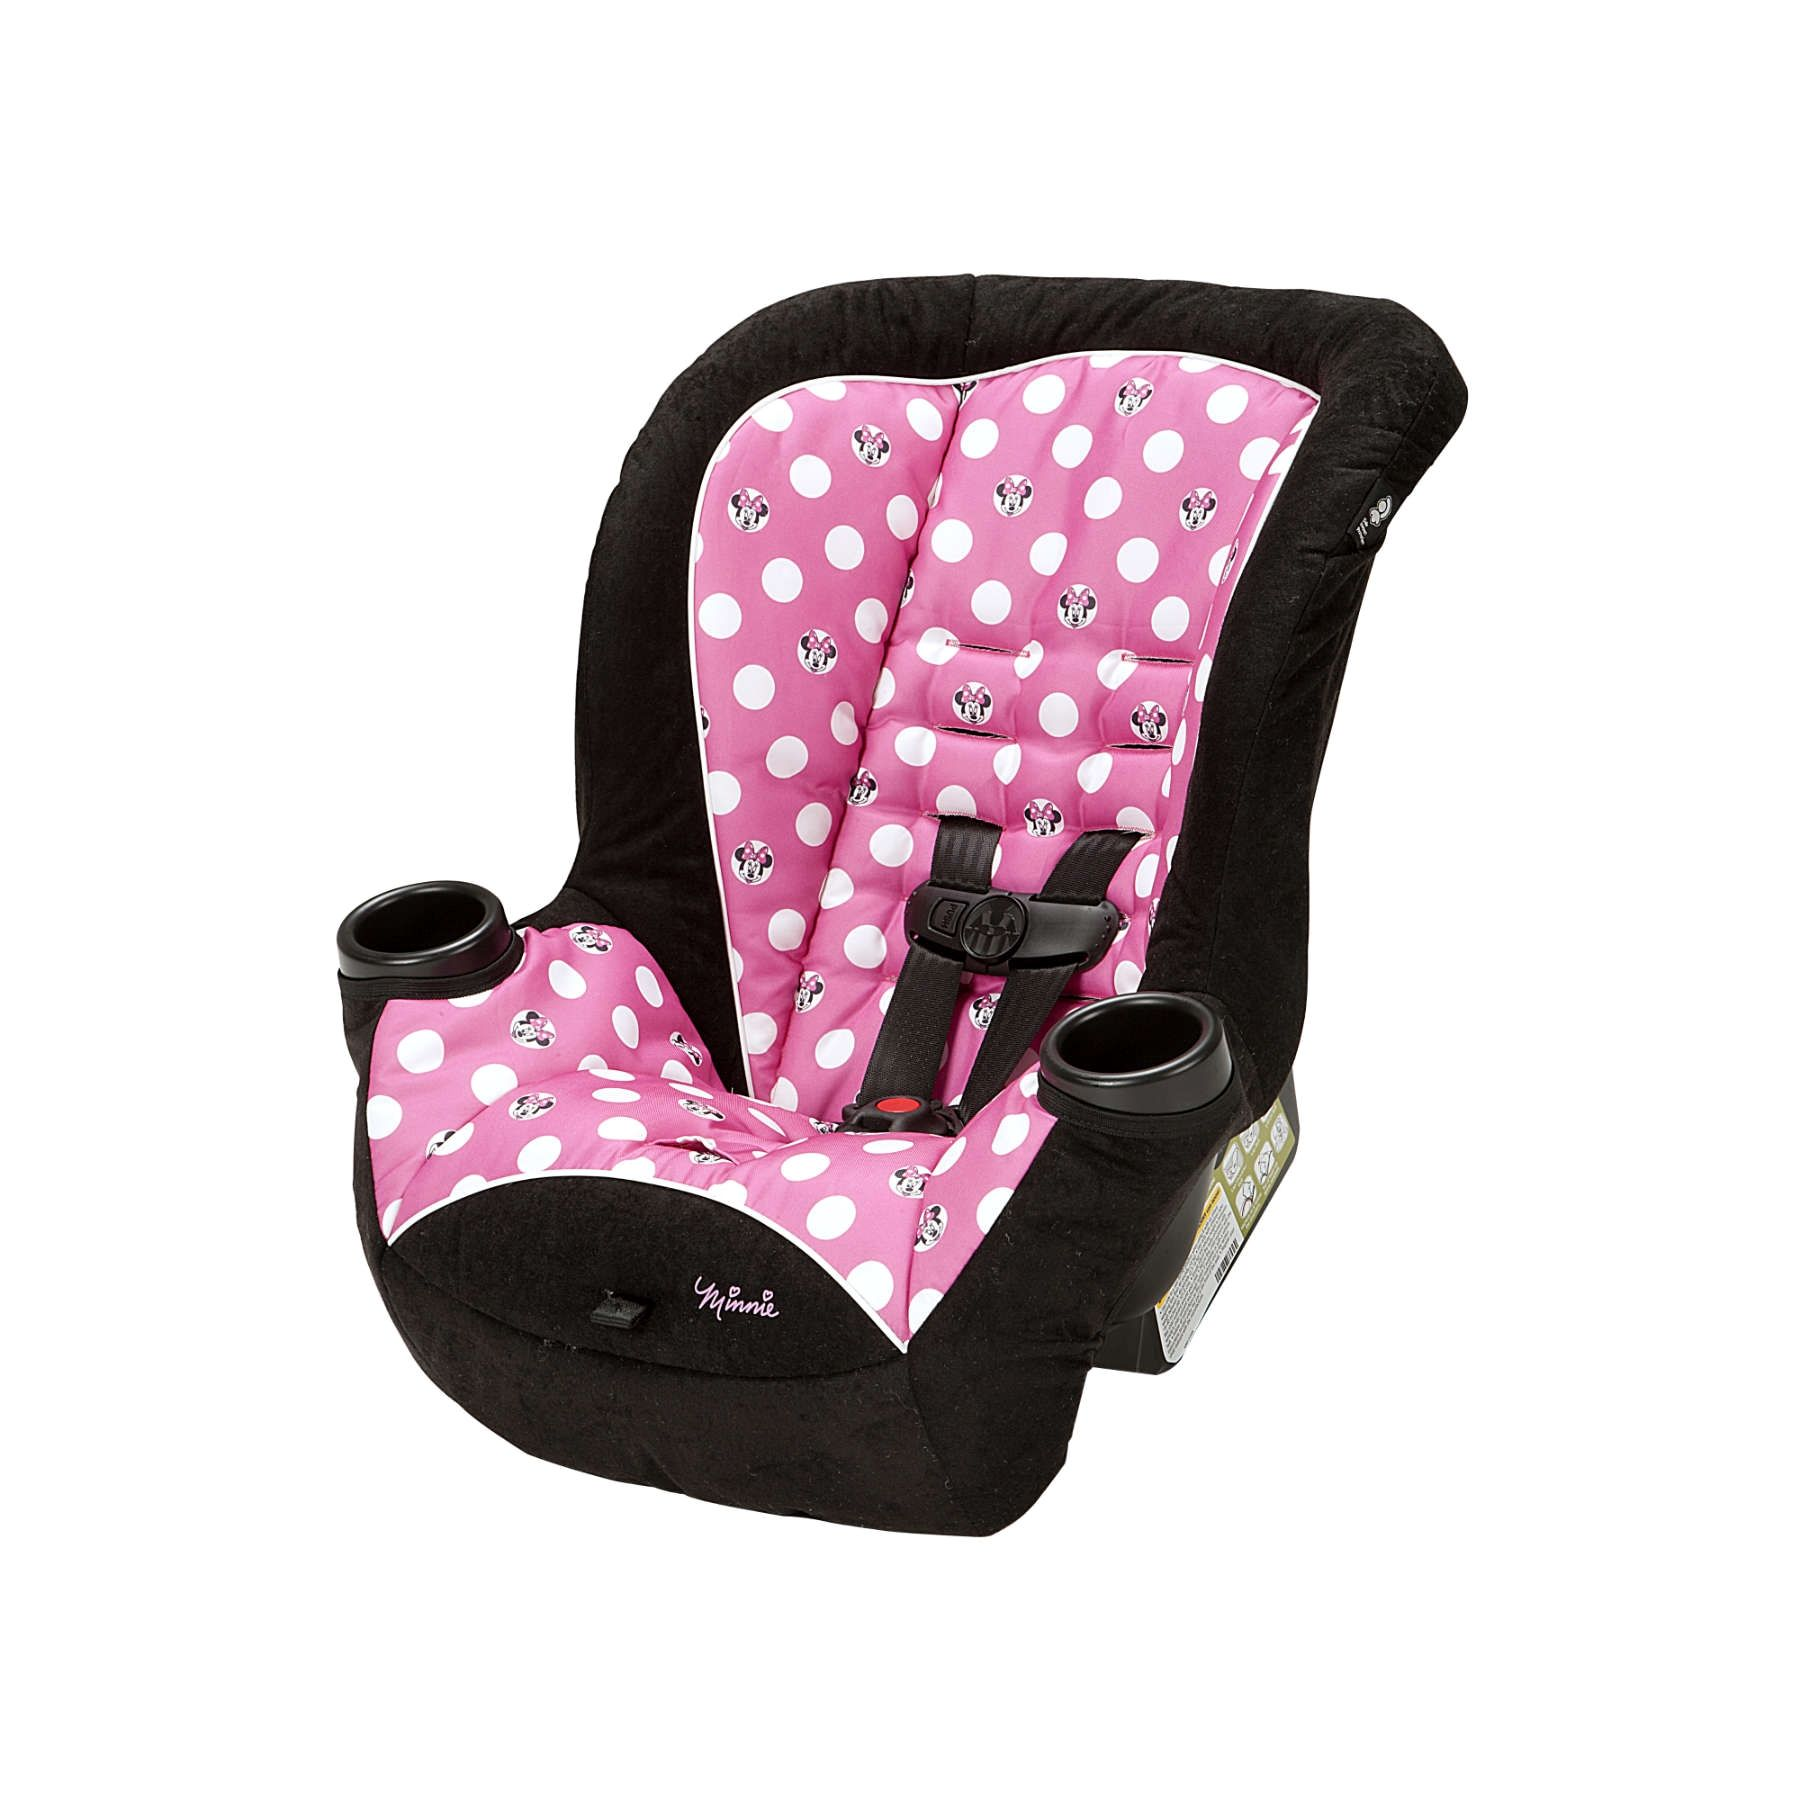 baby car seats,baby car seat reviews,convertible car